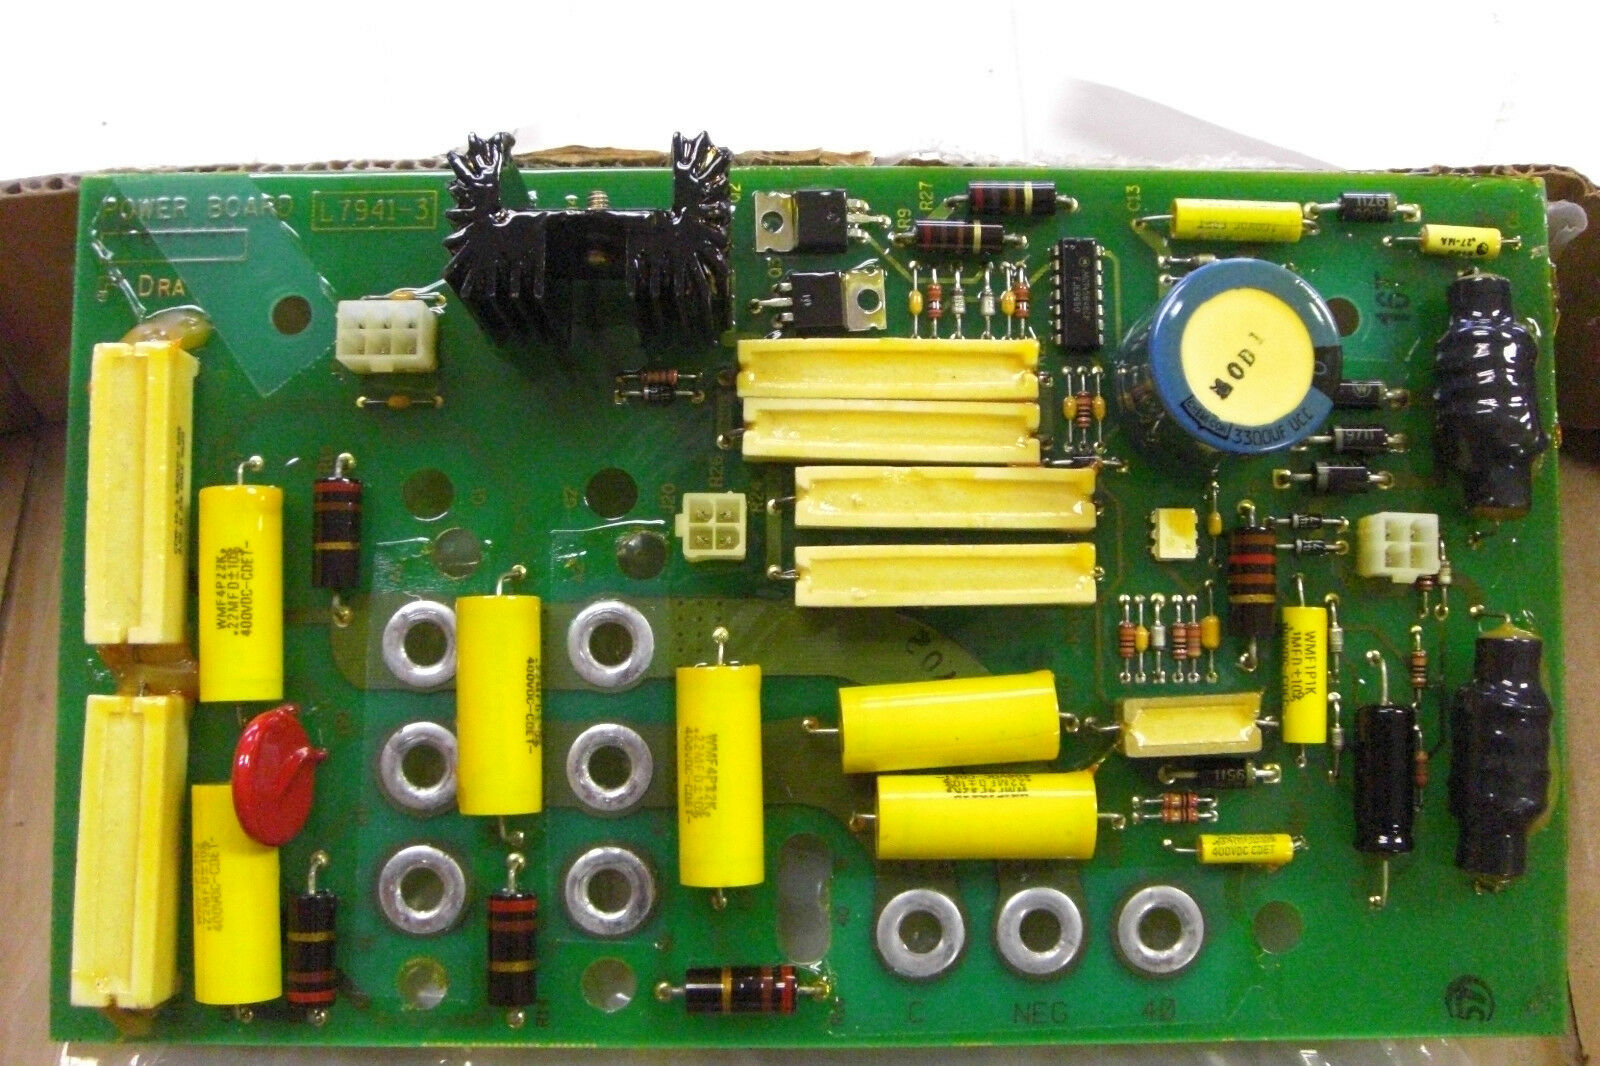 Nos Lincoln Welder L7941 3 Pc Board 34500 Picclick Micro Explorer Ridgid 30063 1 Of 1only Available